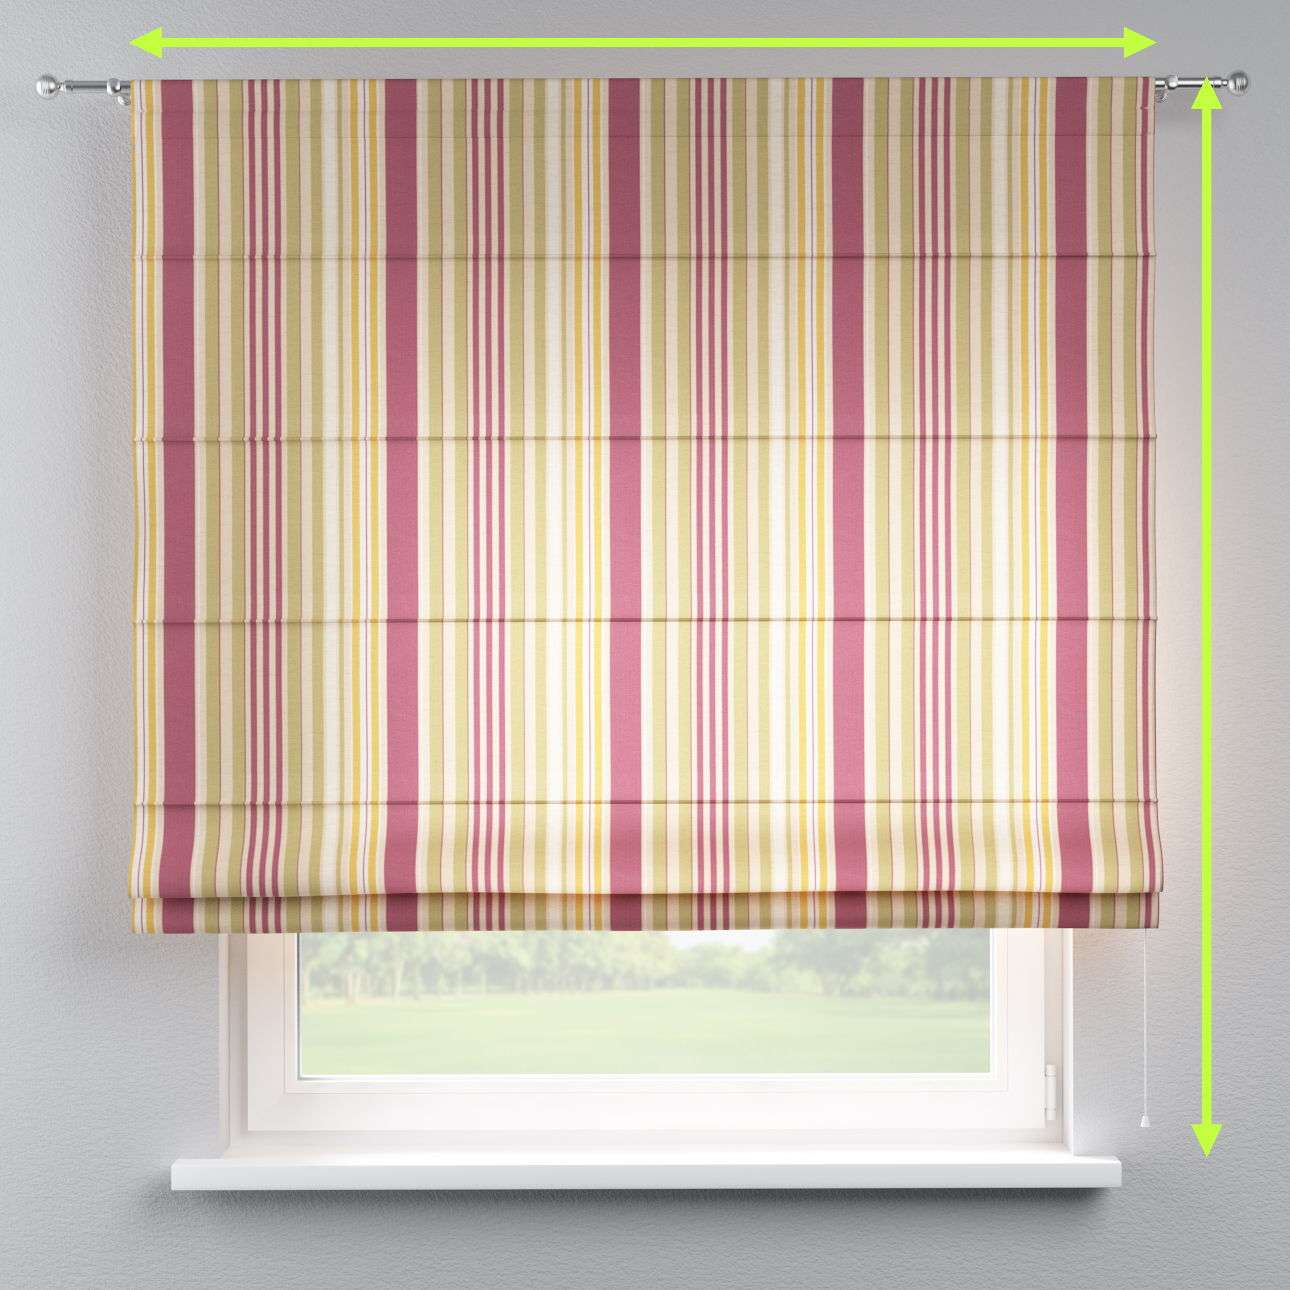 Torino slot roman blind in collection Londres, fabric: 122-09